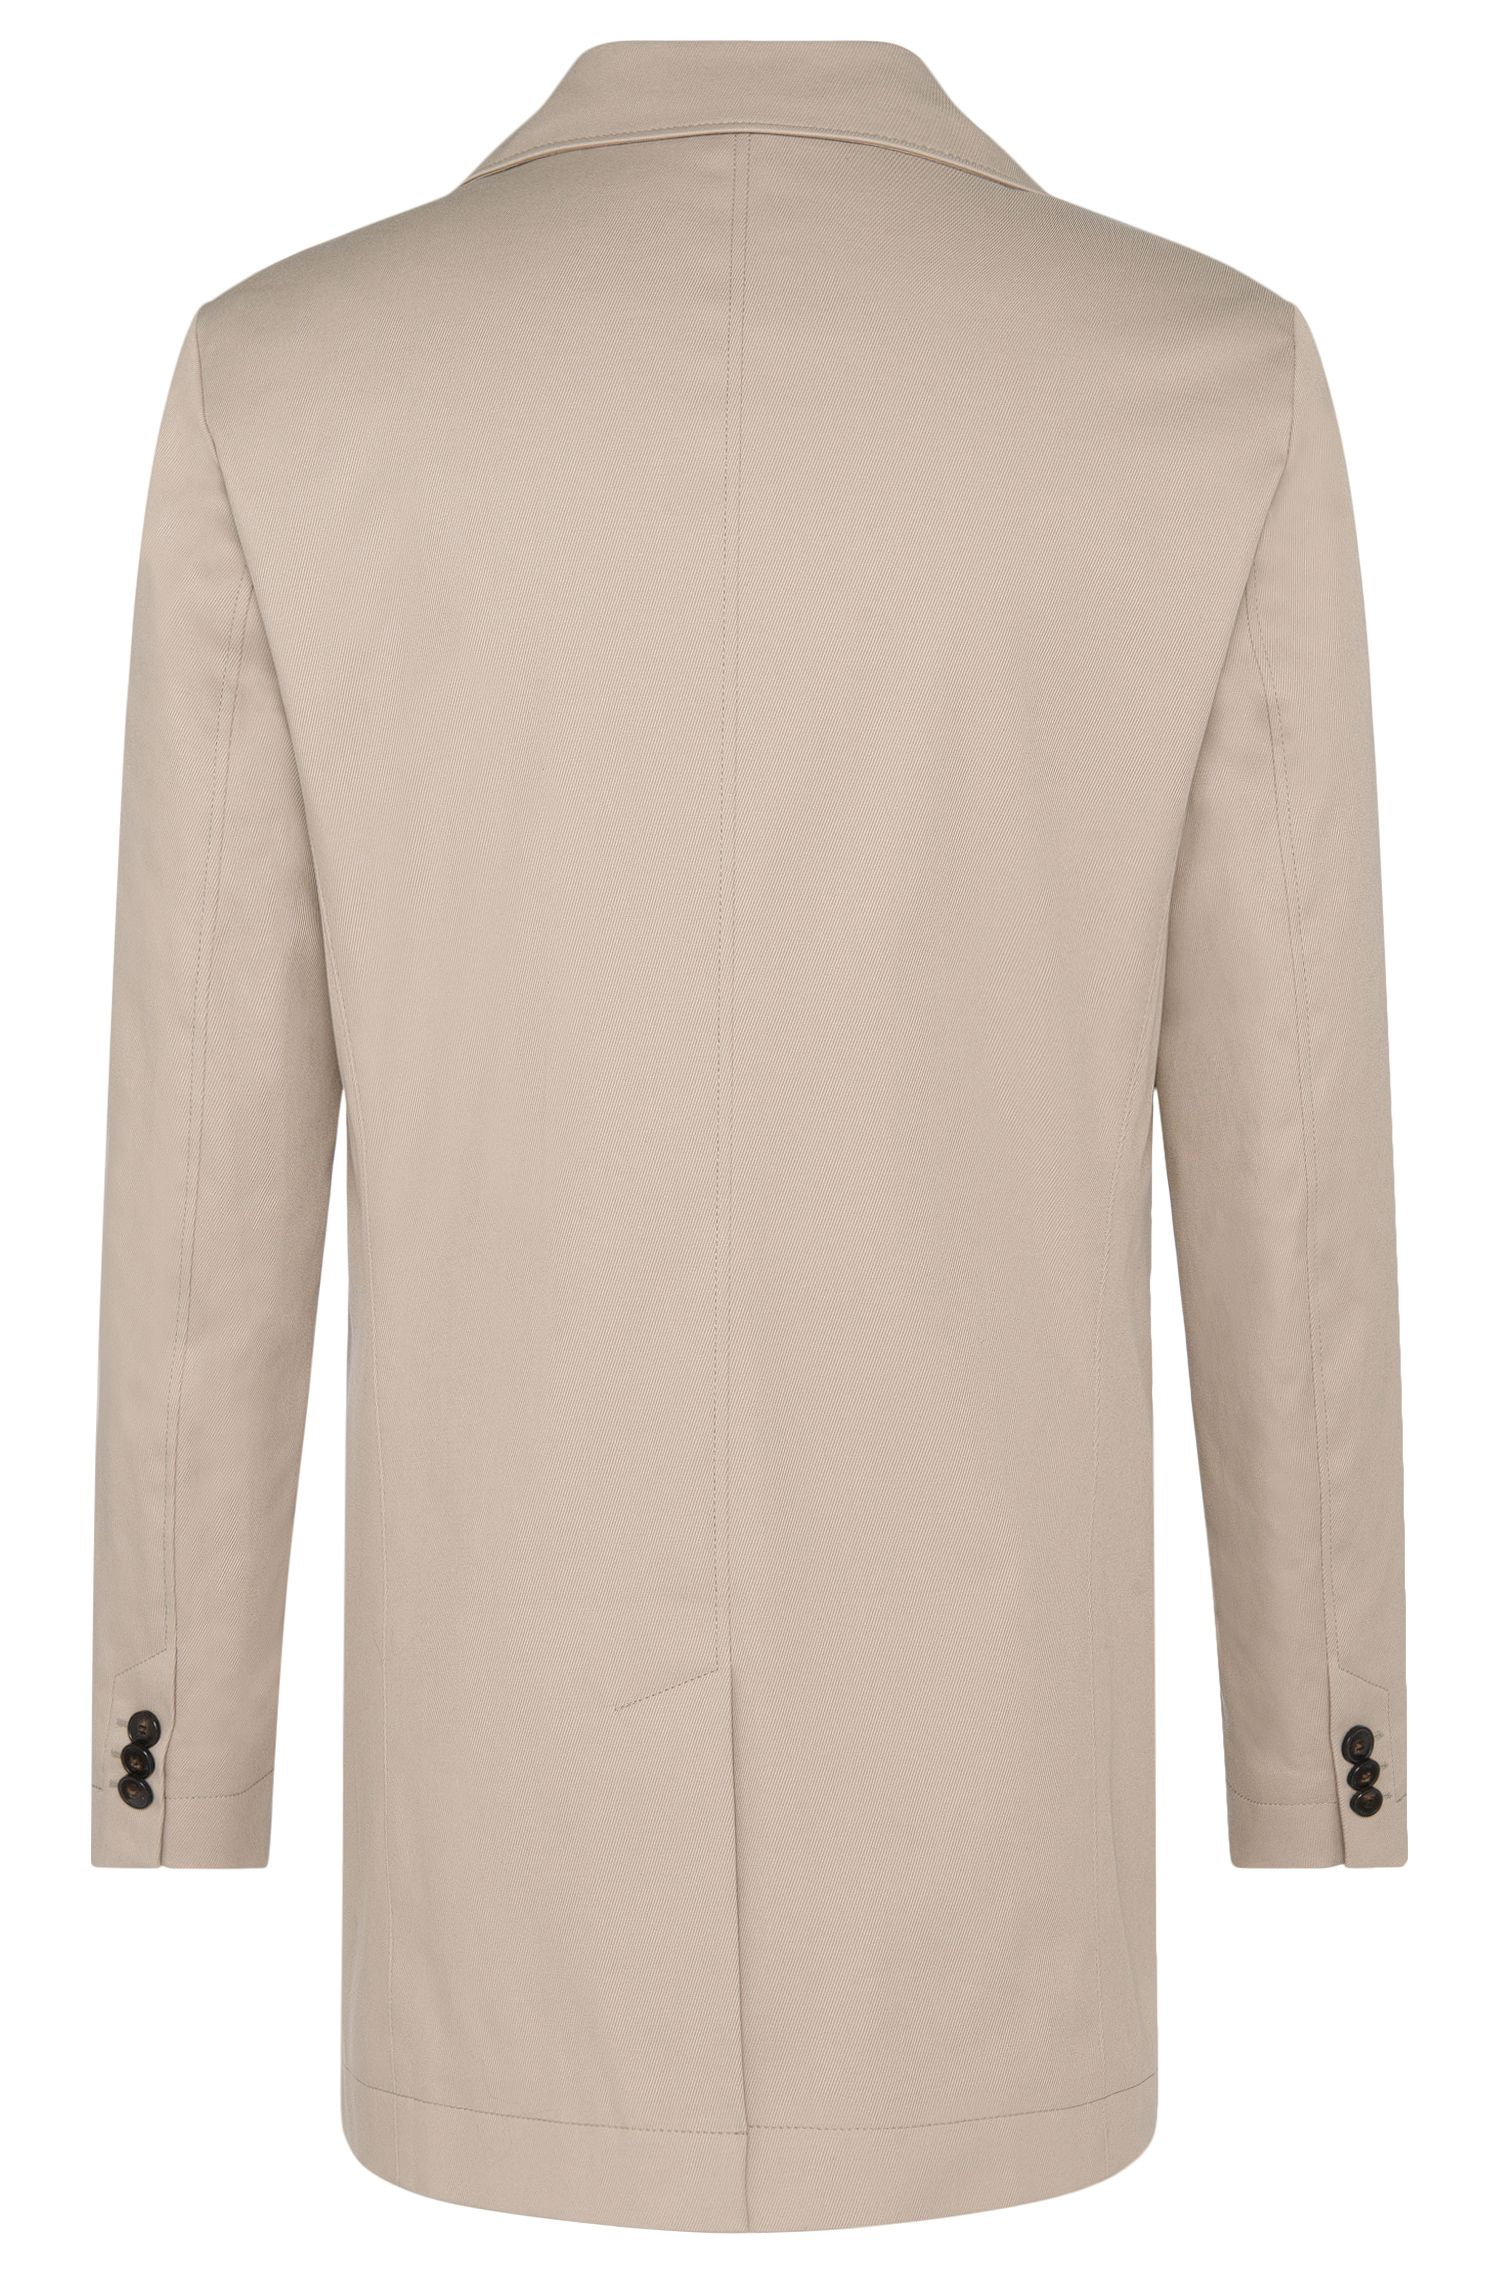 Manteau Regular Fit en coton stretch imperméable : « C-Dais4 »